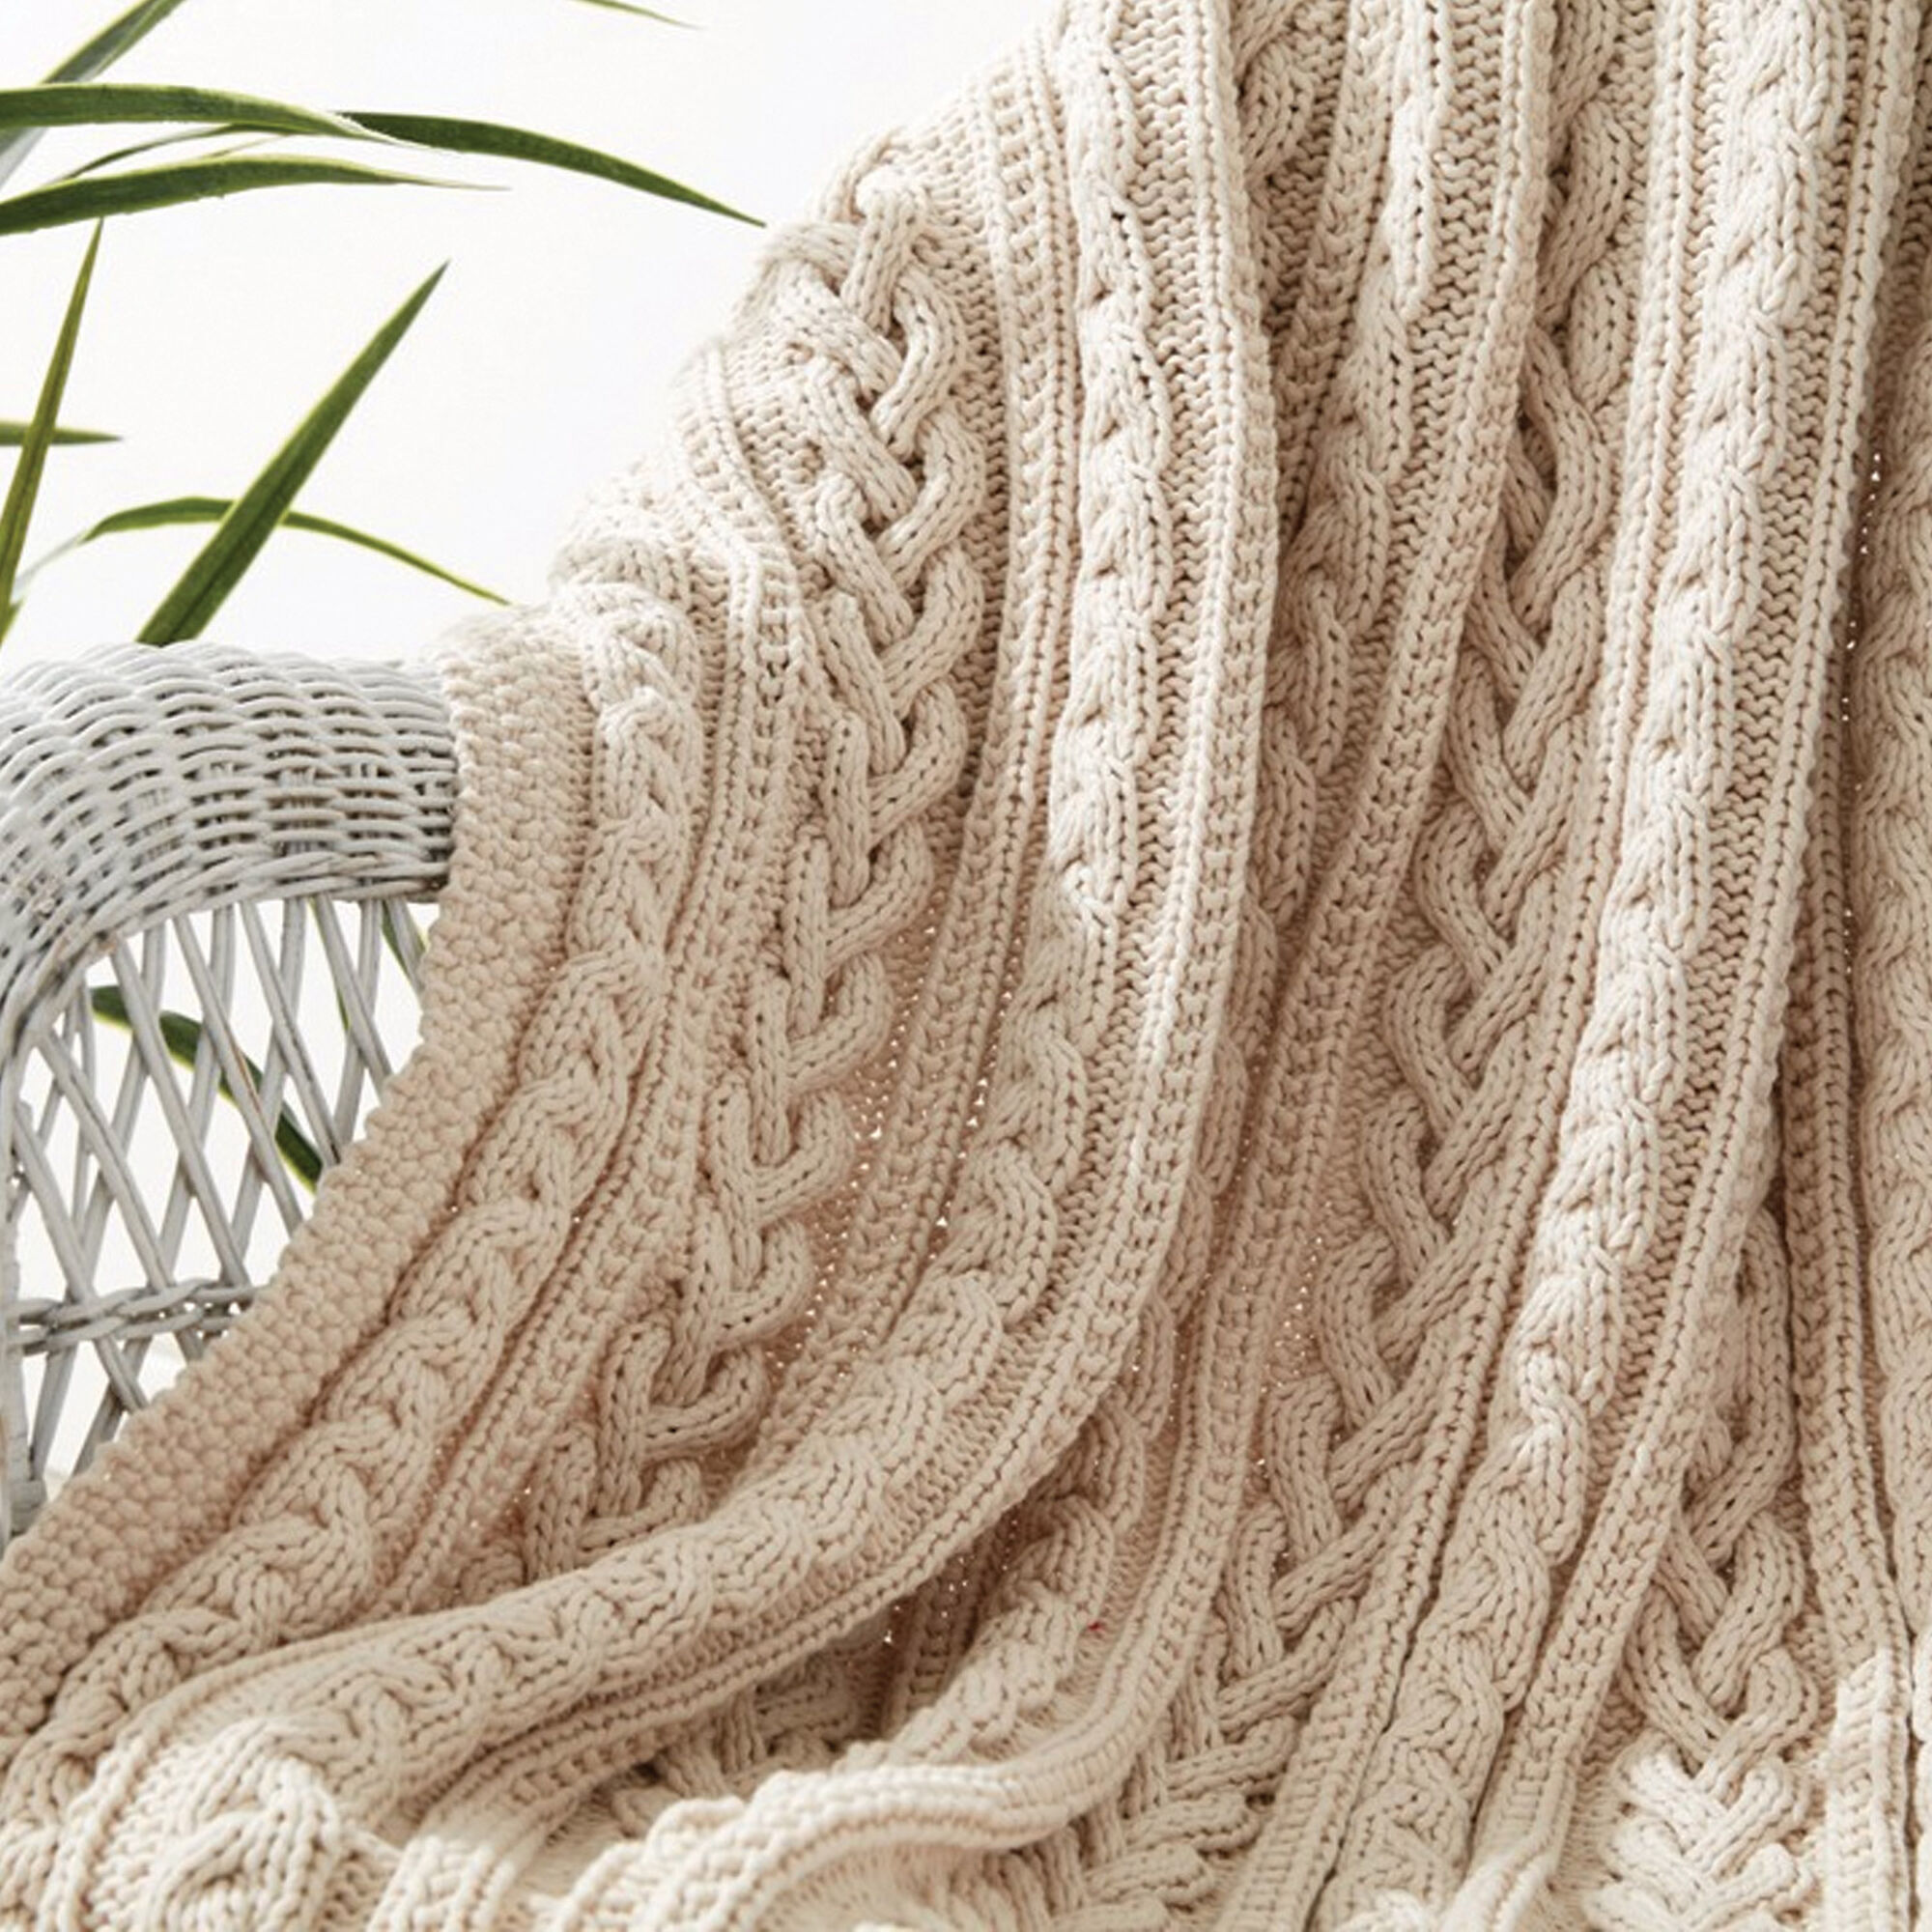 Bernat Braided Cables Knit Throw Yarnspirations